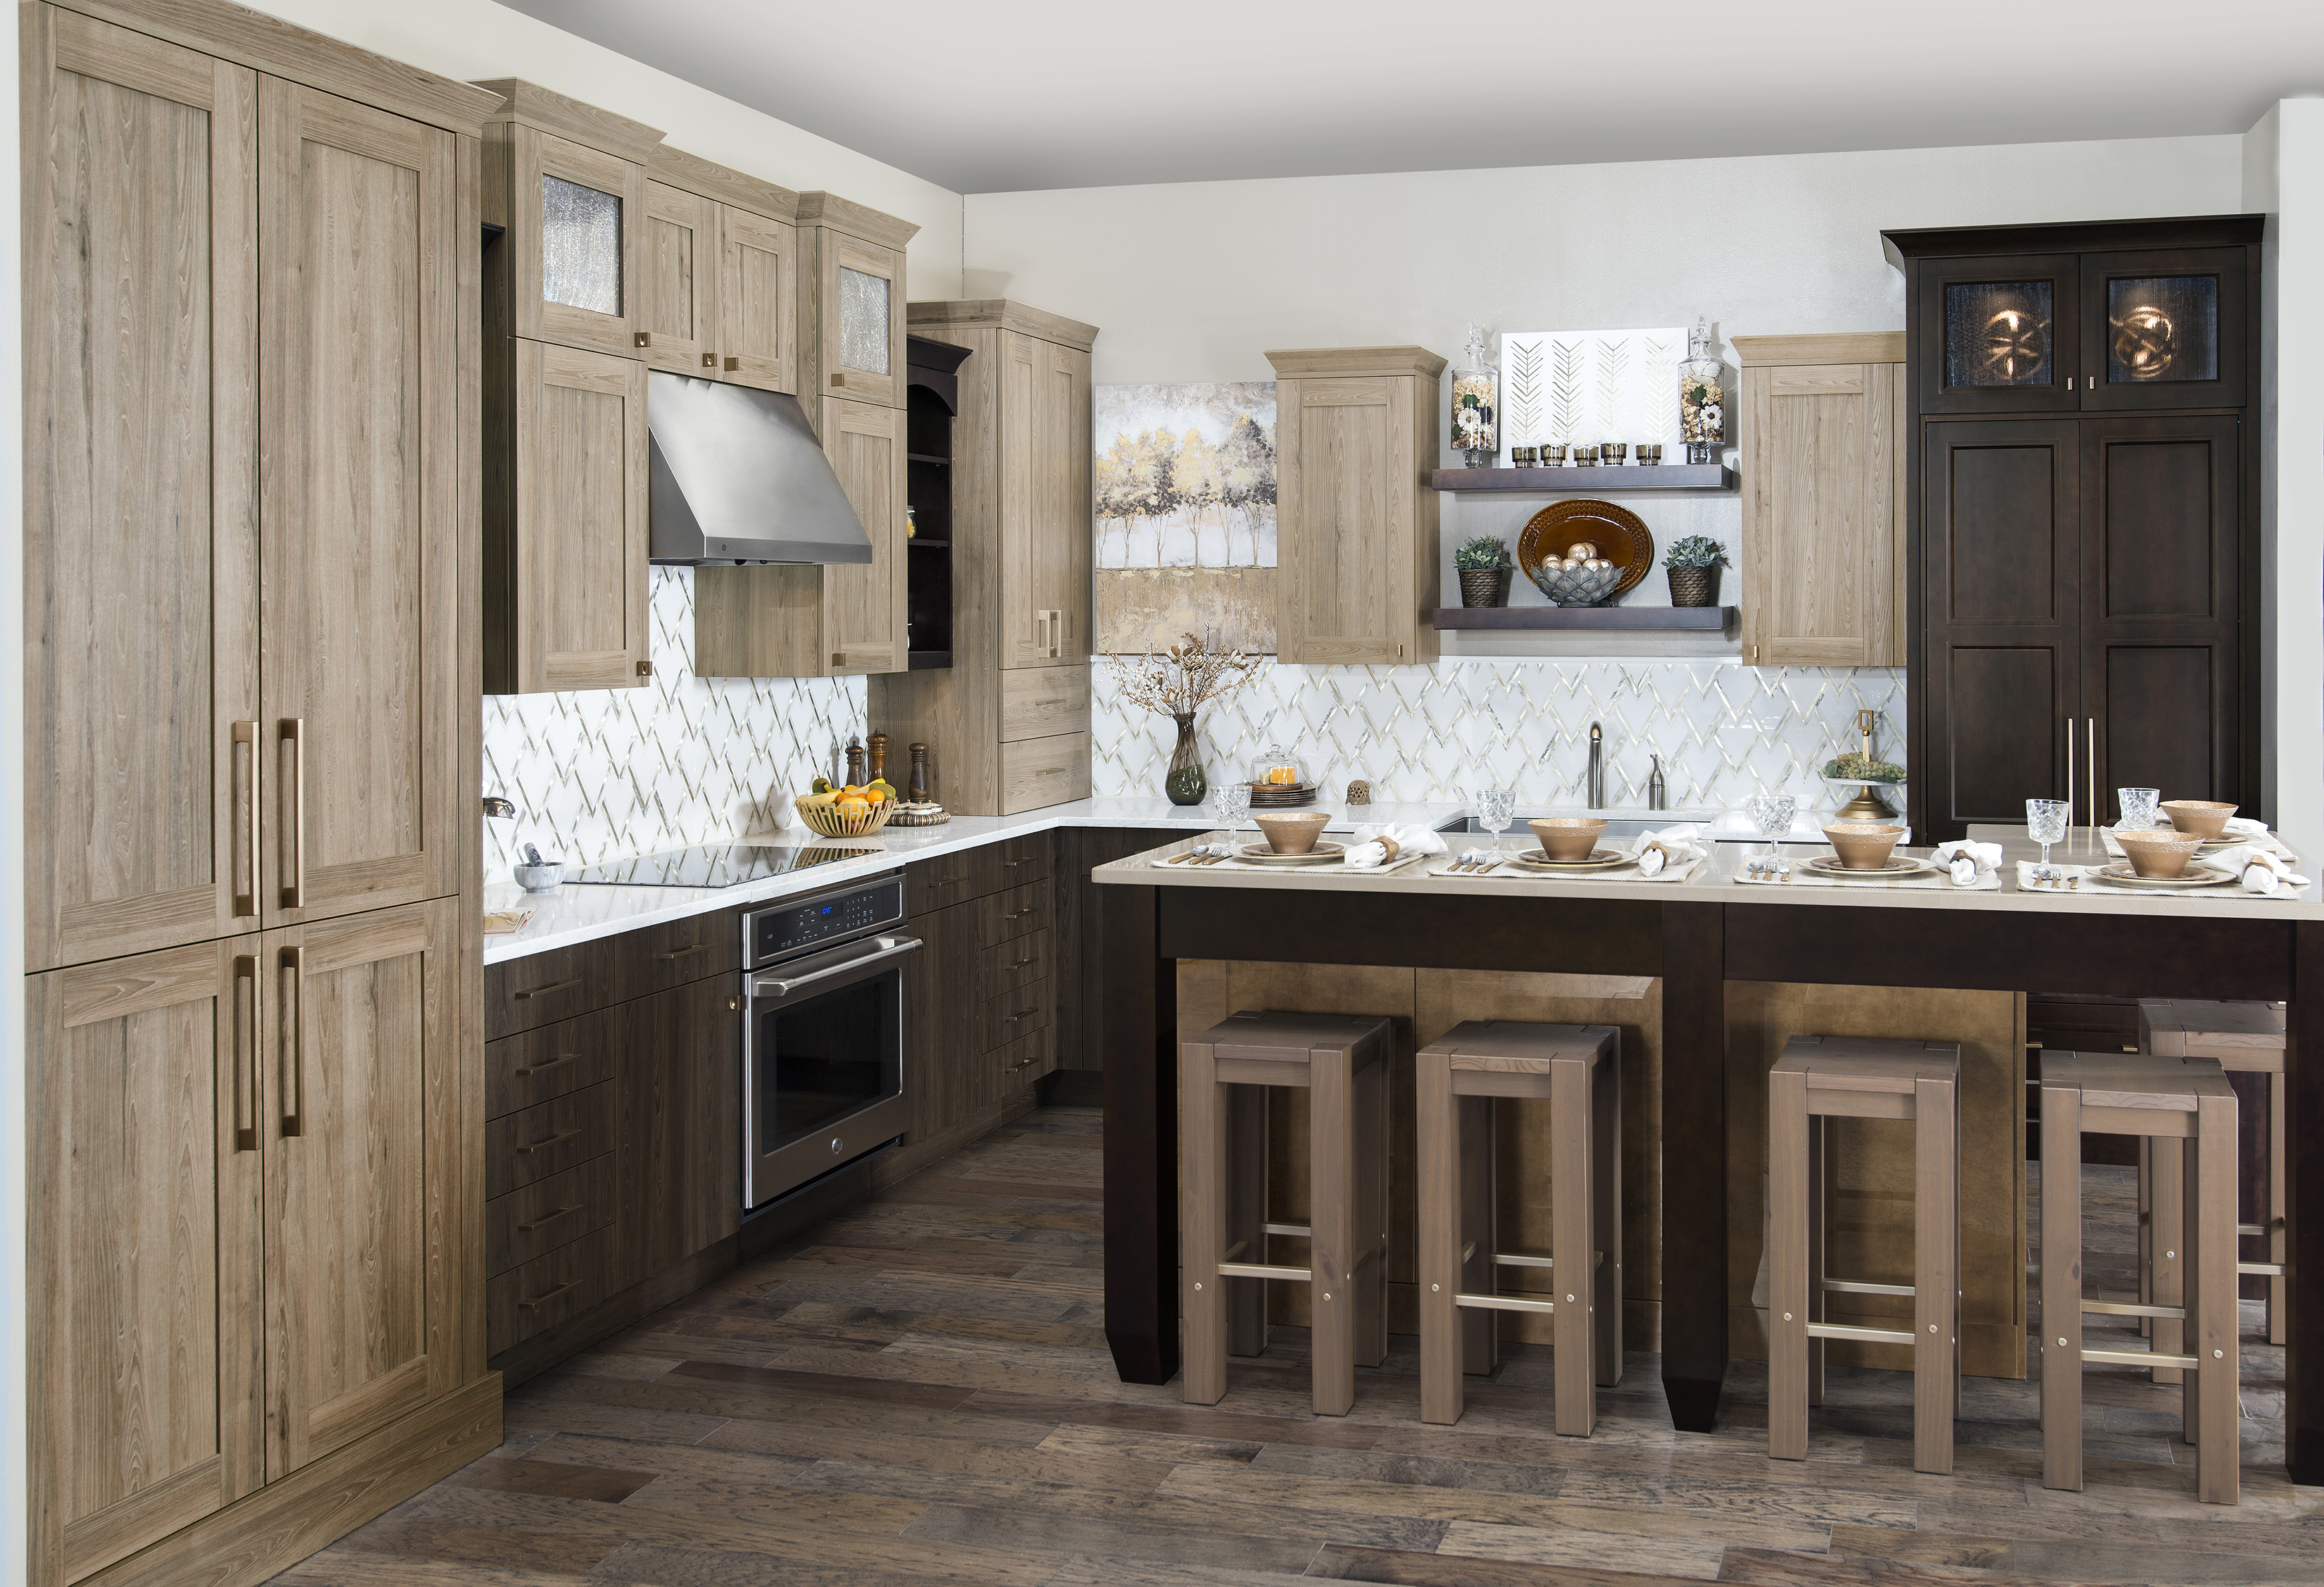 Cabinetry Orlando Cabinets In Resurgence At Kbis Ibs Show Woodworking Network